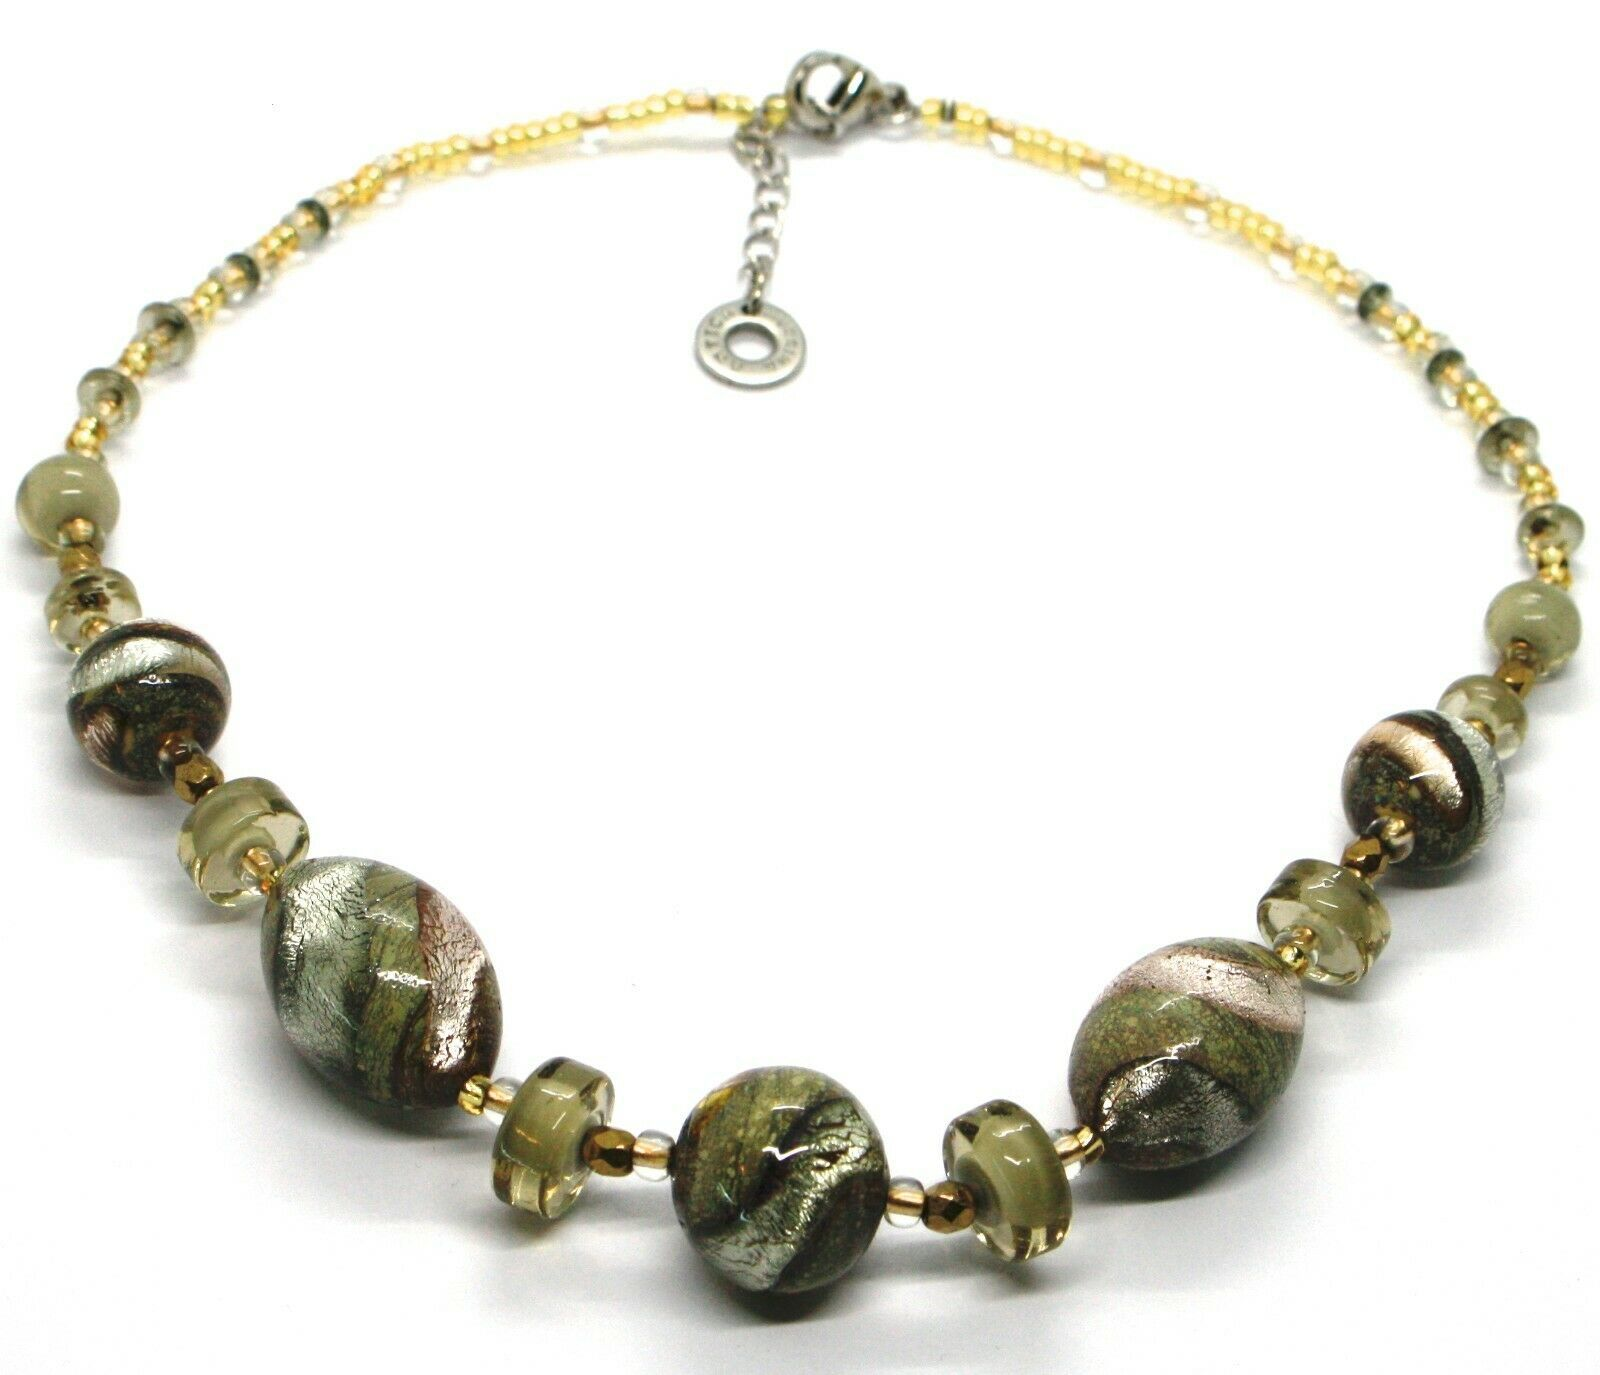 NECKLACE ANTIQUE MURRINA VENICE CO998A32, BRIGHT, LONG 44 CM, GREEN PINK AMBER